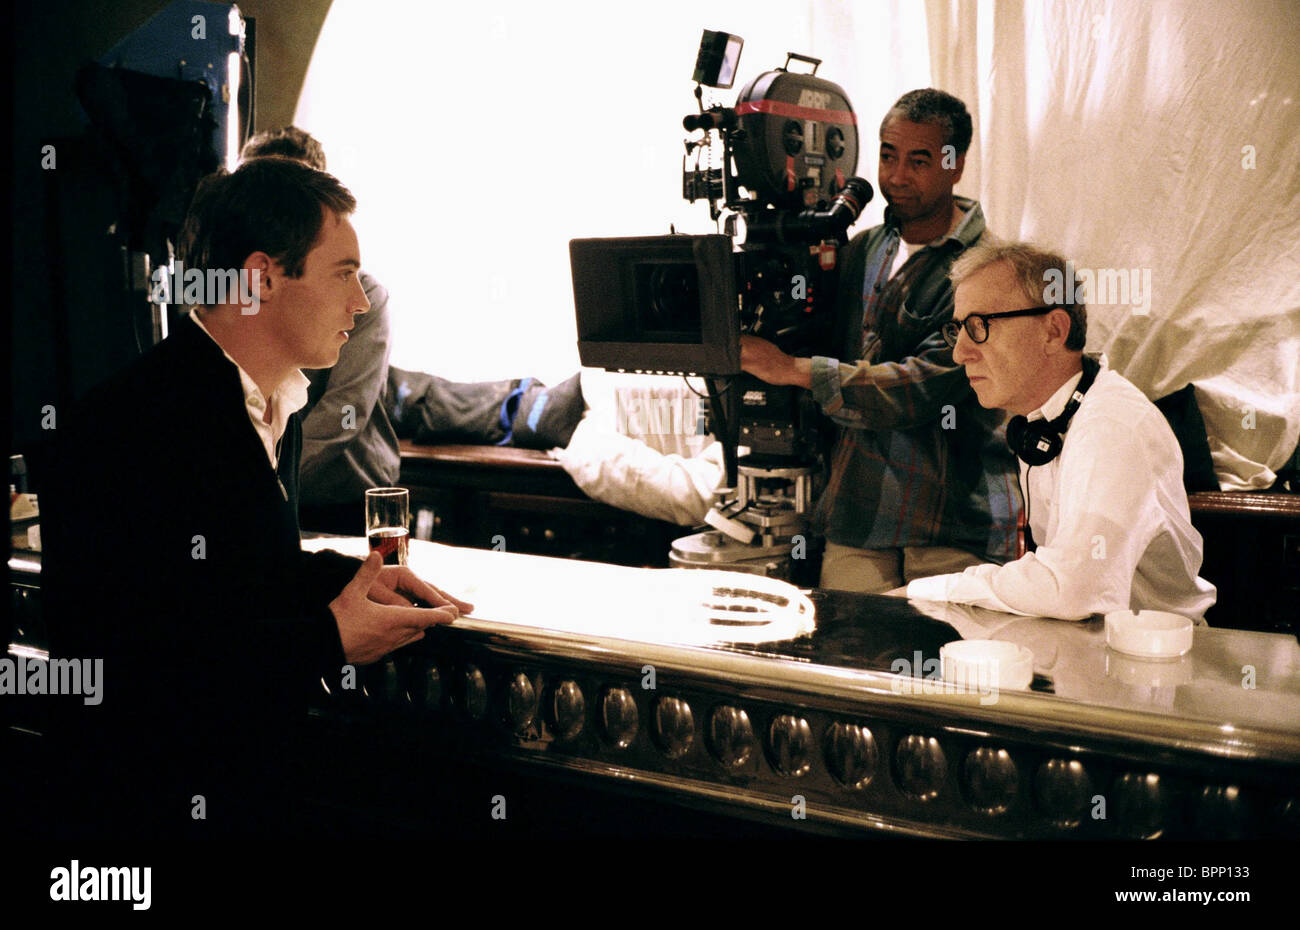 JONATHAN RHYS MEYERS, WOODY ALLEN, MATCH POINT, 2005 Stock Photo